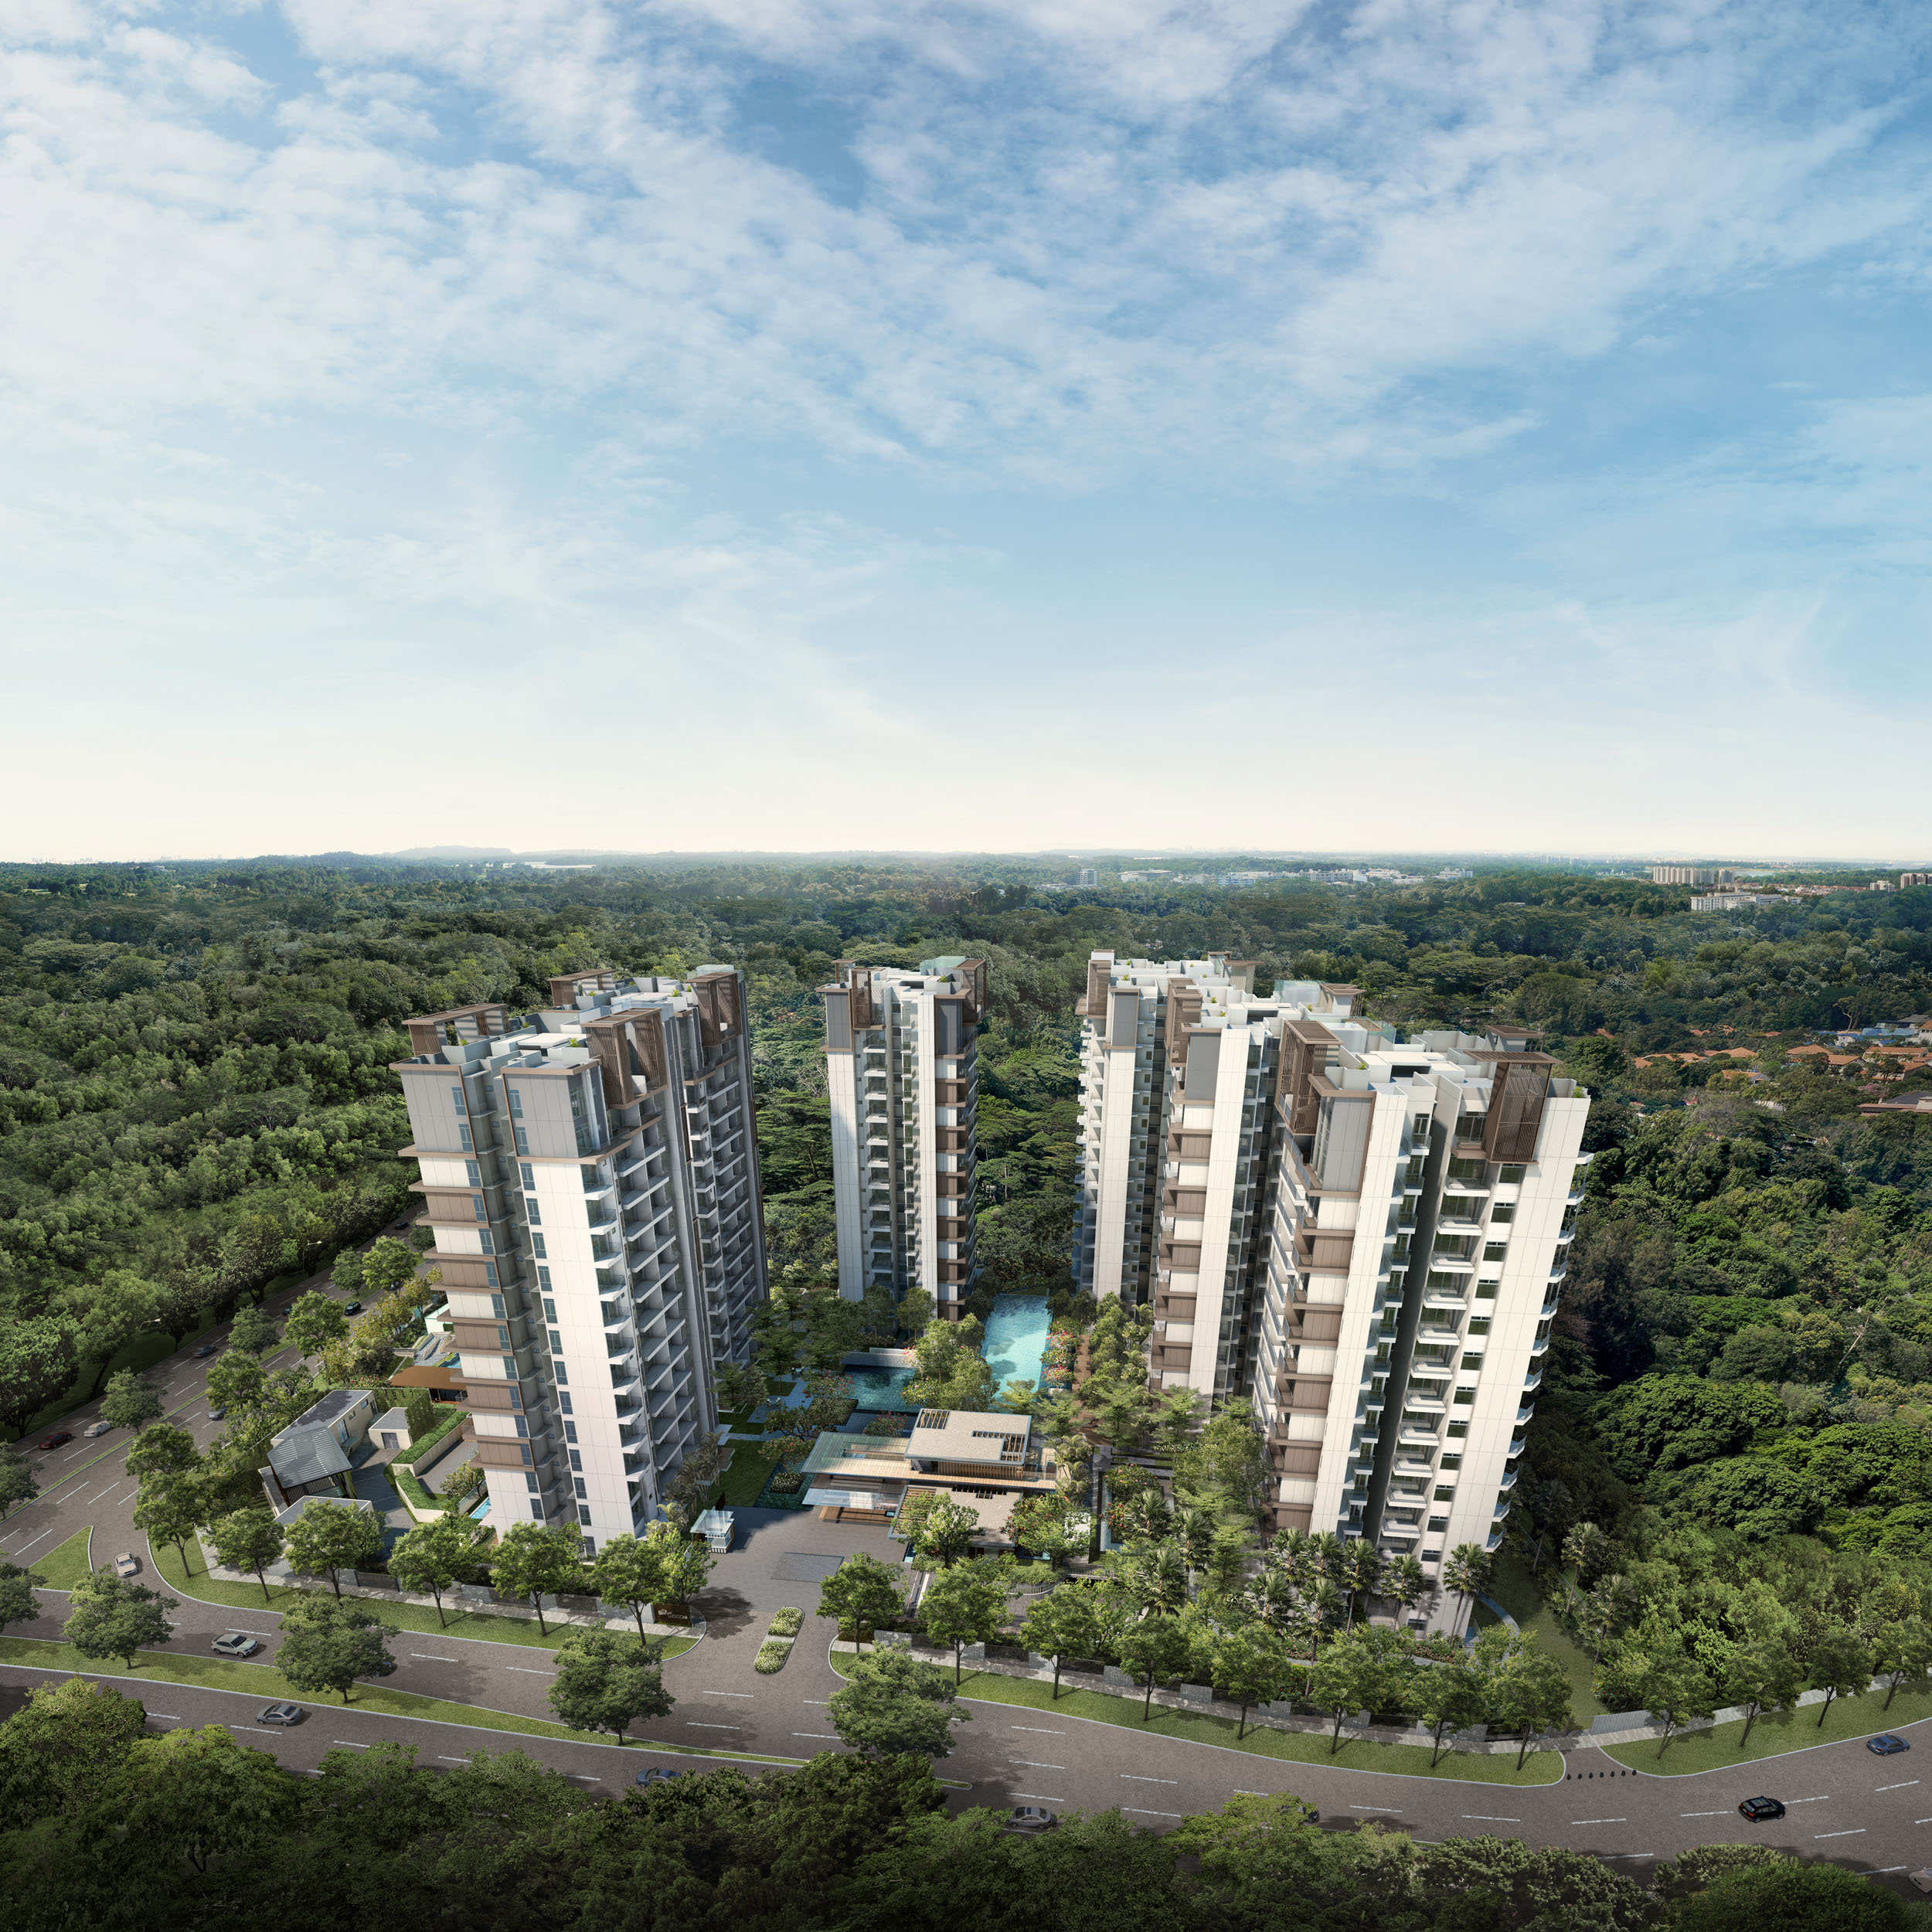 The Skywoods condo at hillview